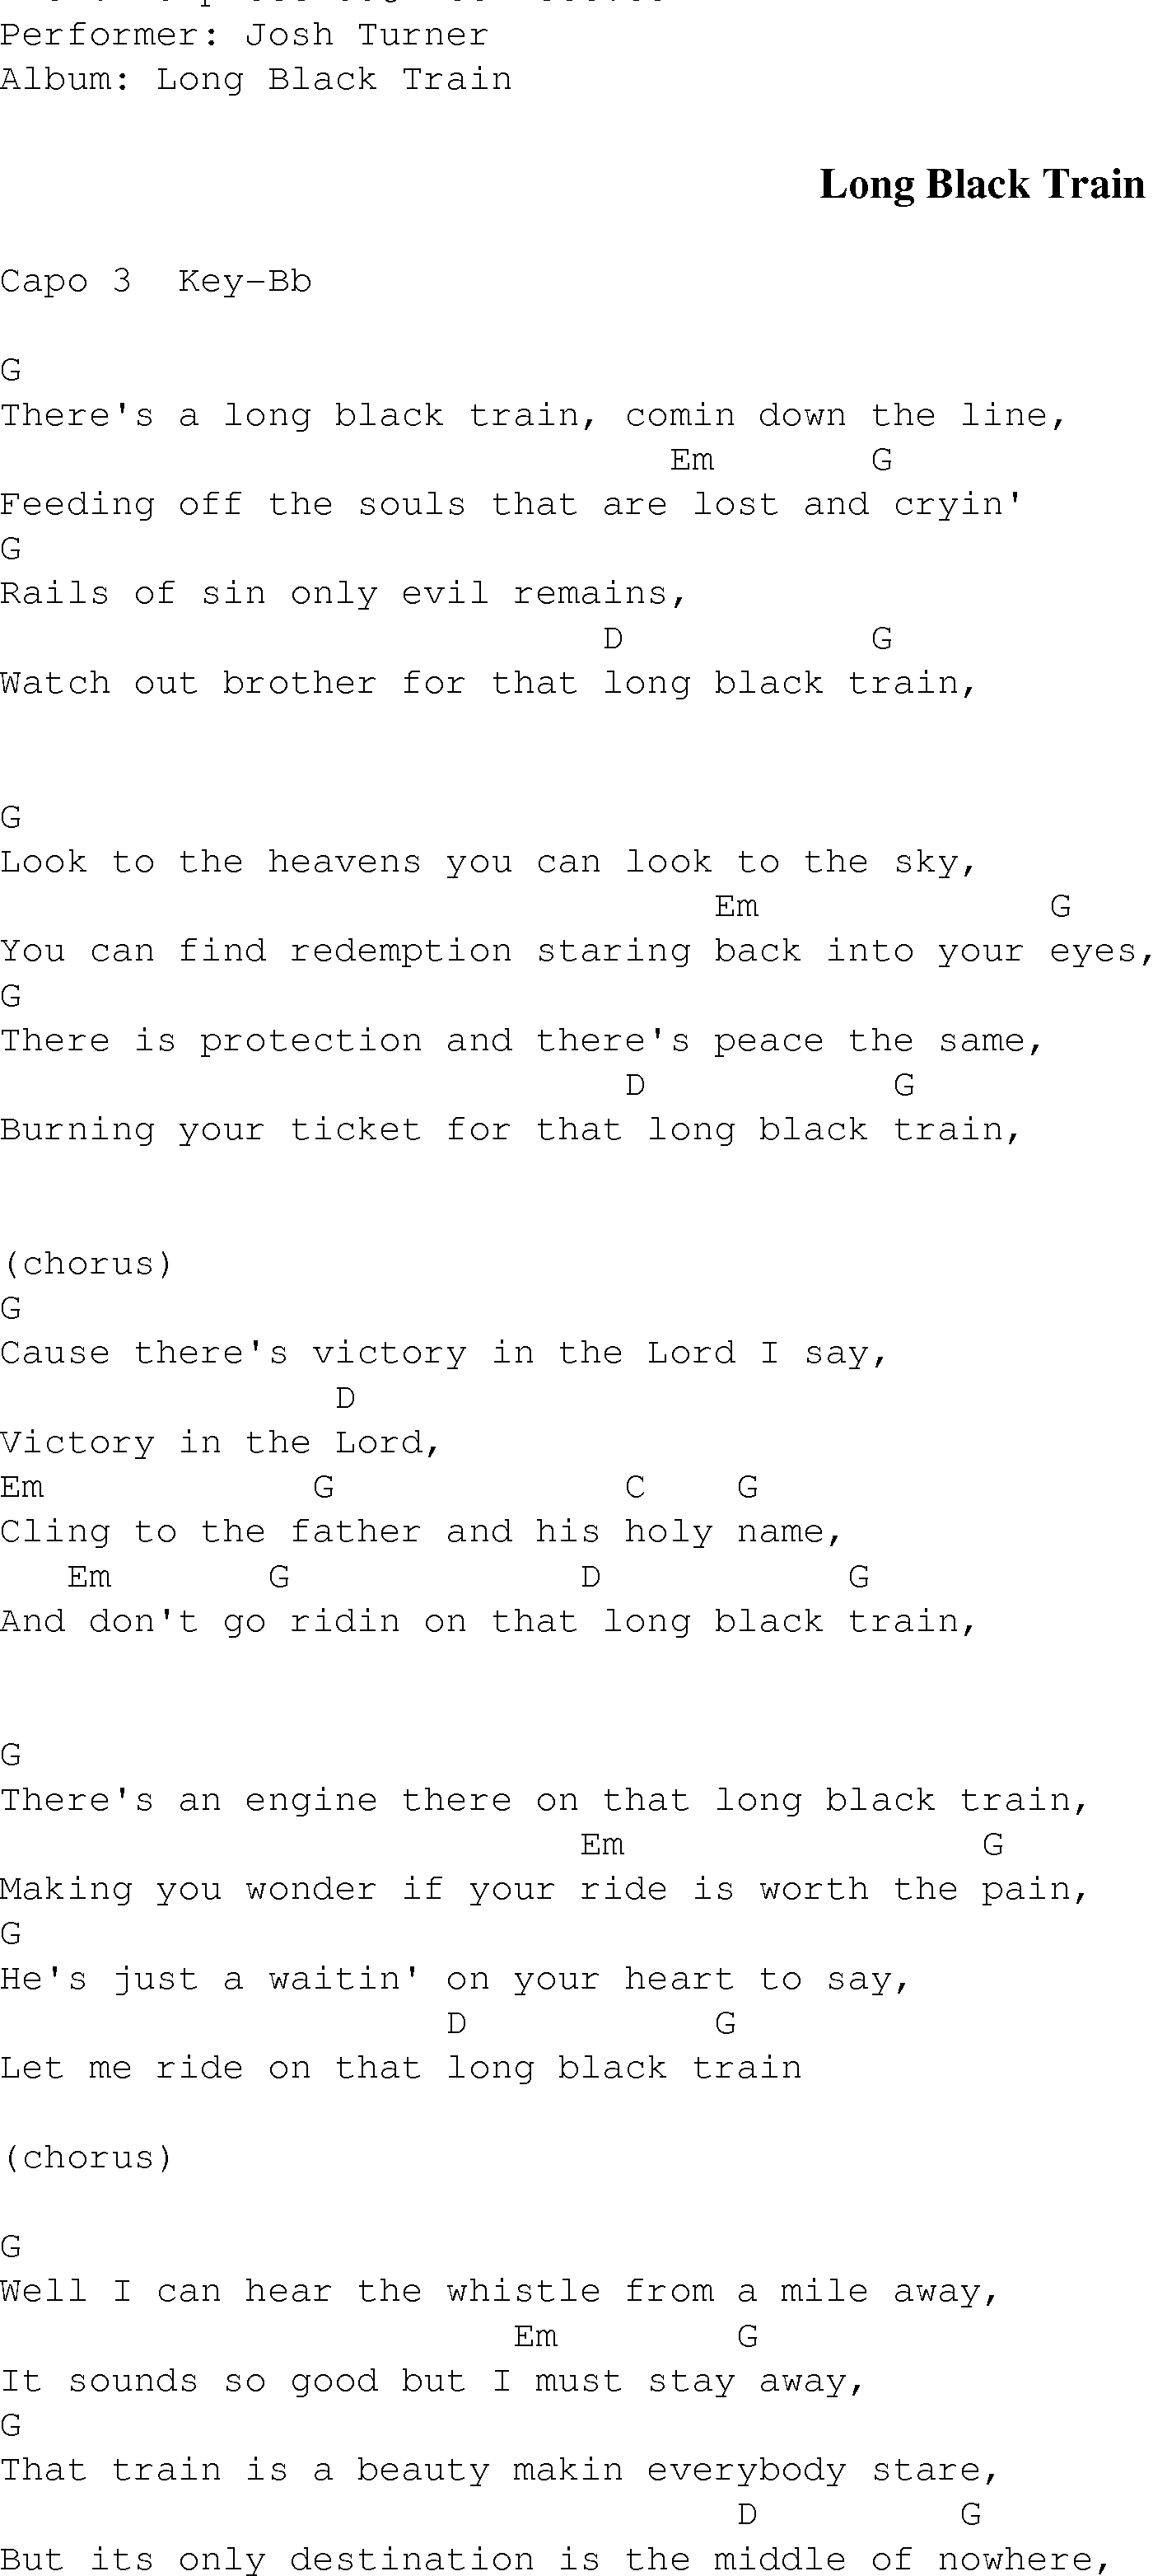 Long Black Train Christian Gospel Song Lyrics And Chords